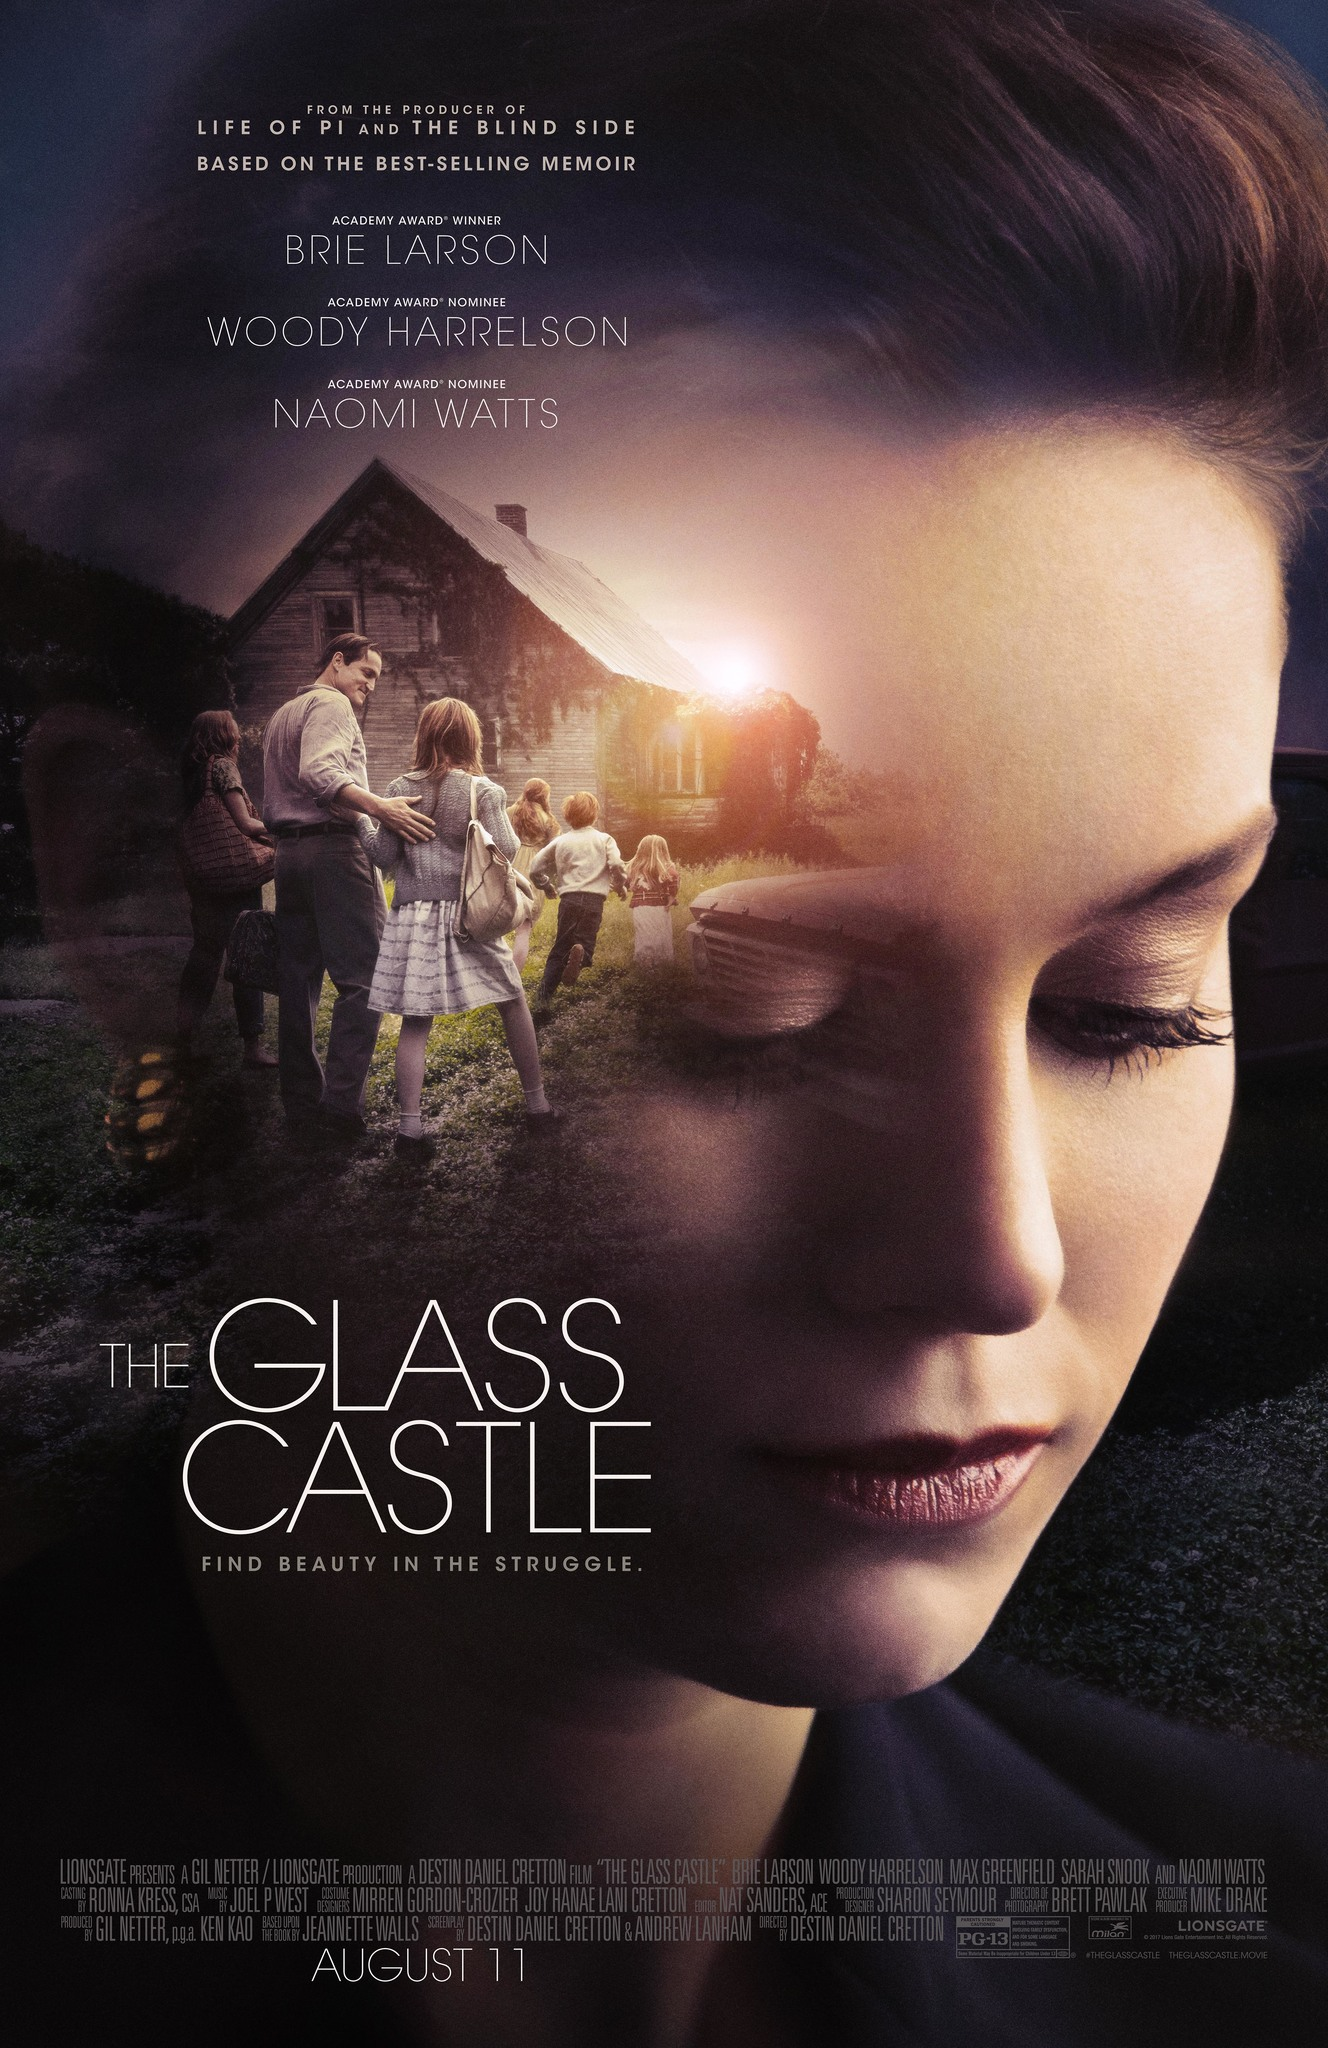 The Glass Castle (2017) - Directed by: Destin Daniel CrettonStarring: Woody Harrelson, Brie Larson, Naomi Watts, Ella Anderson, Sarah Snook, Max GreenfieldRated: PG-13 for Mature Thematic Content Involving Family Dysfunction, and For Some Language and SmokingRunning Time: 2 h 7 mTMM Score: 2 stars out of 5STRENGTHS: ActingWEAKNESSES: Overly Sentimental, Betrays the Spirit of the Memoir